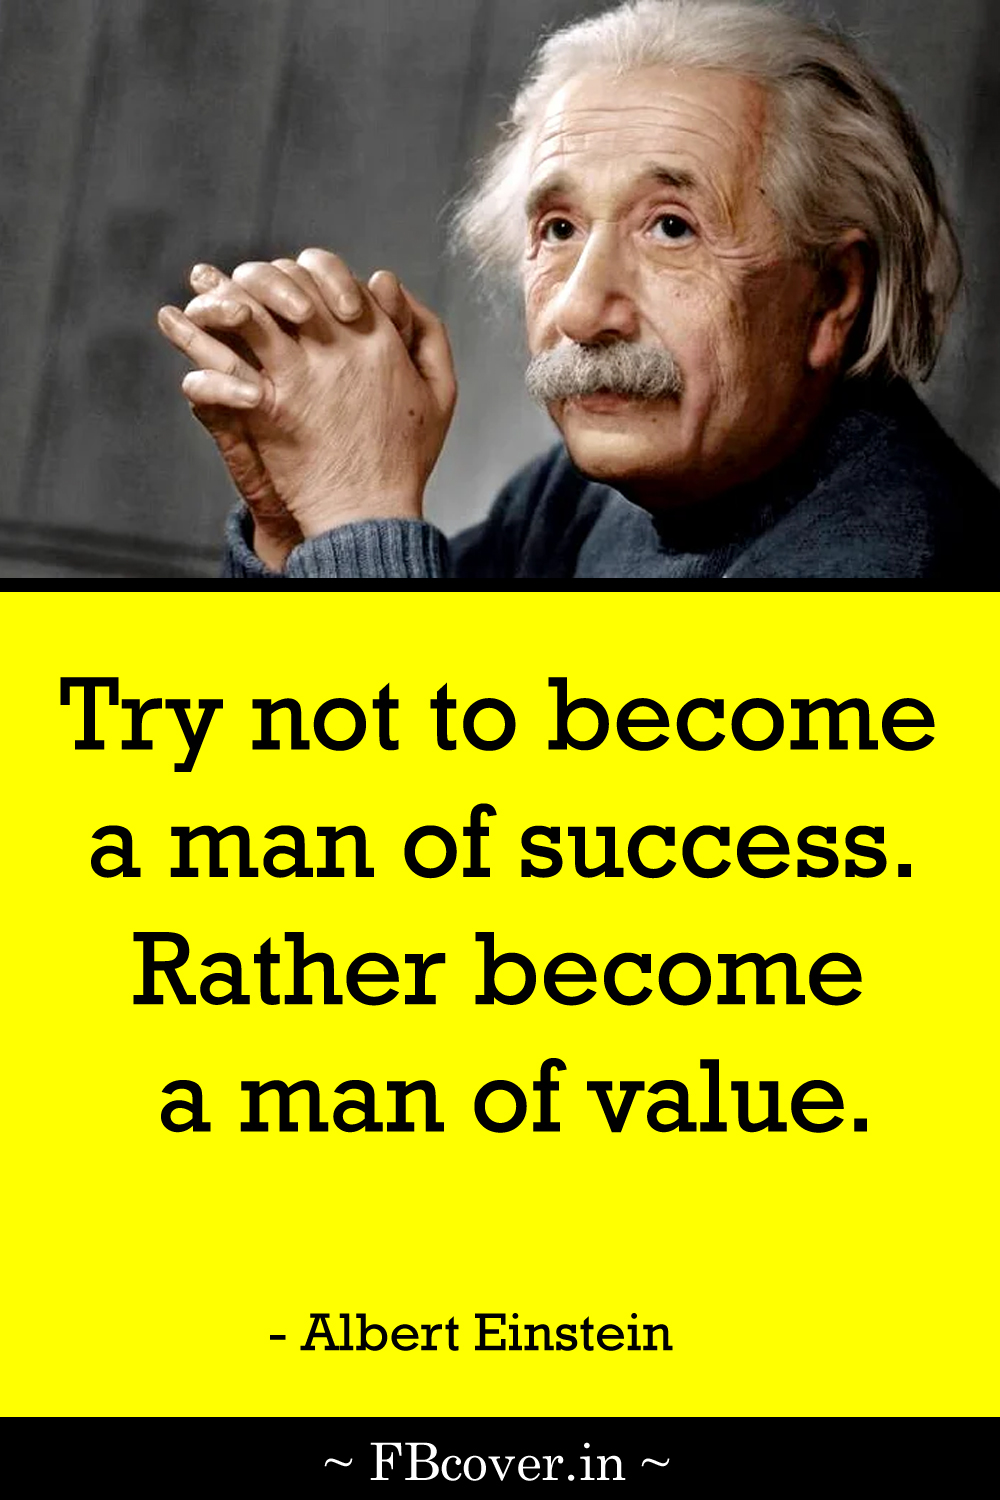 """Albert Einstein Quotes: """"try not to become a man of success. Rather become a man of value."""""""